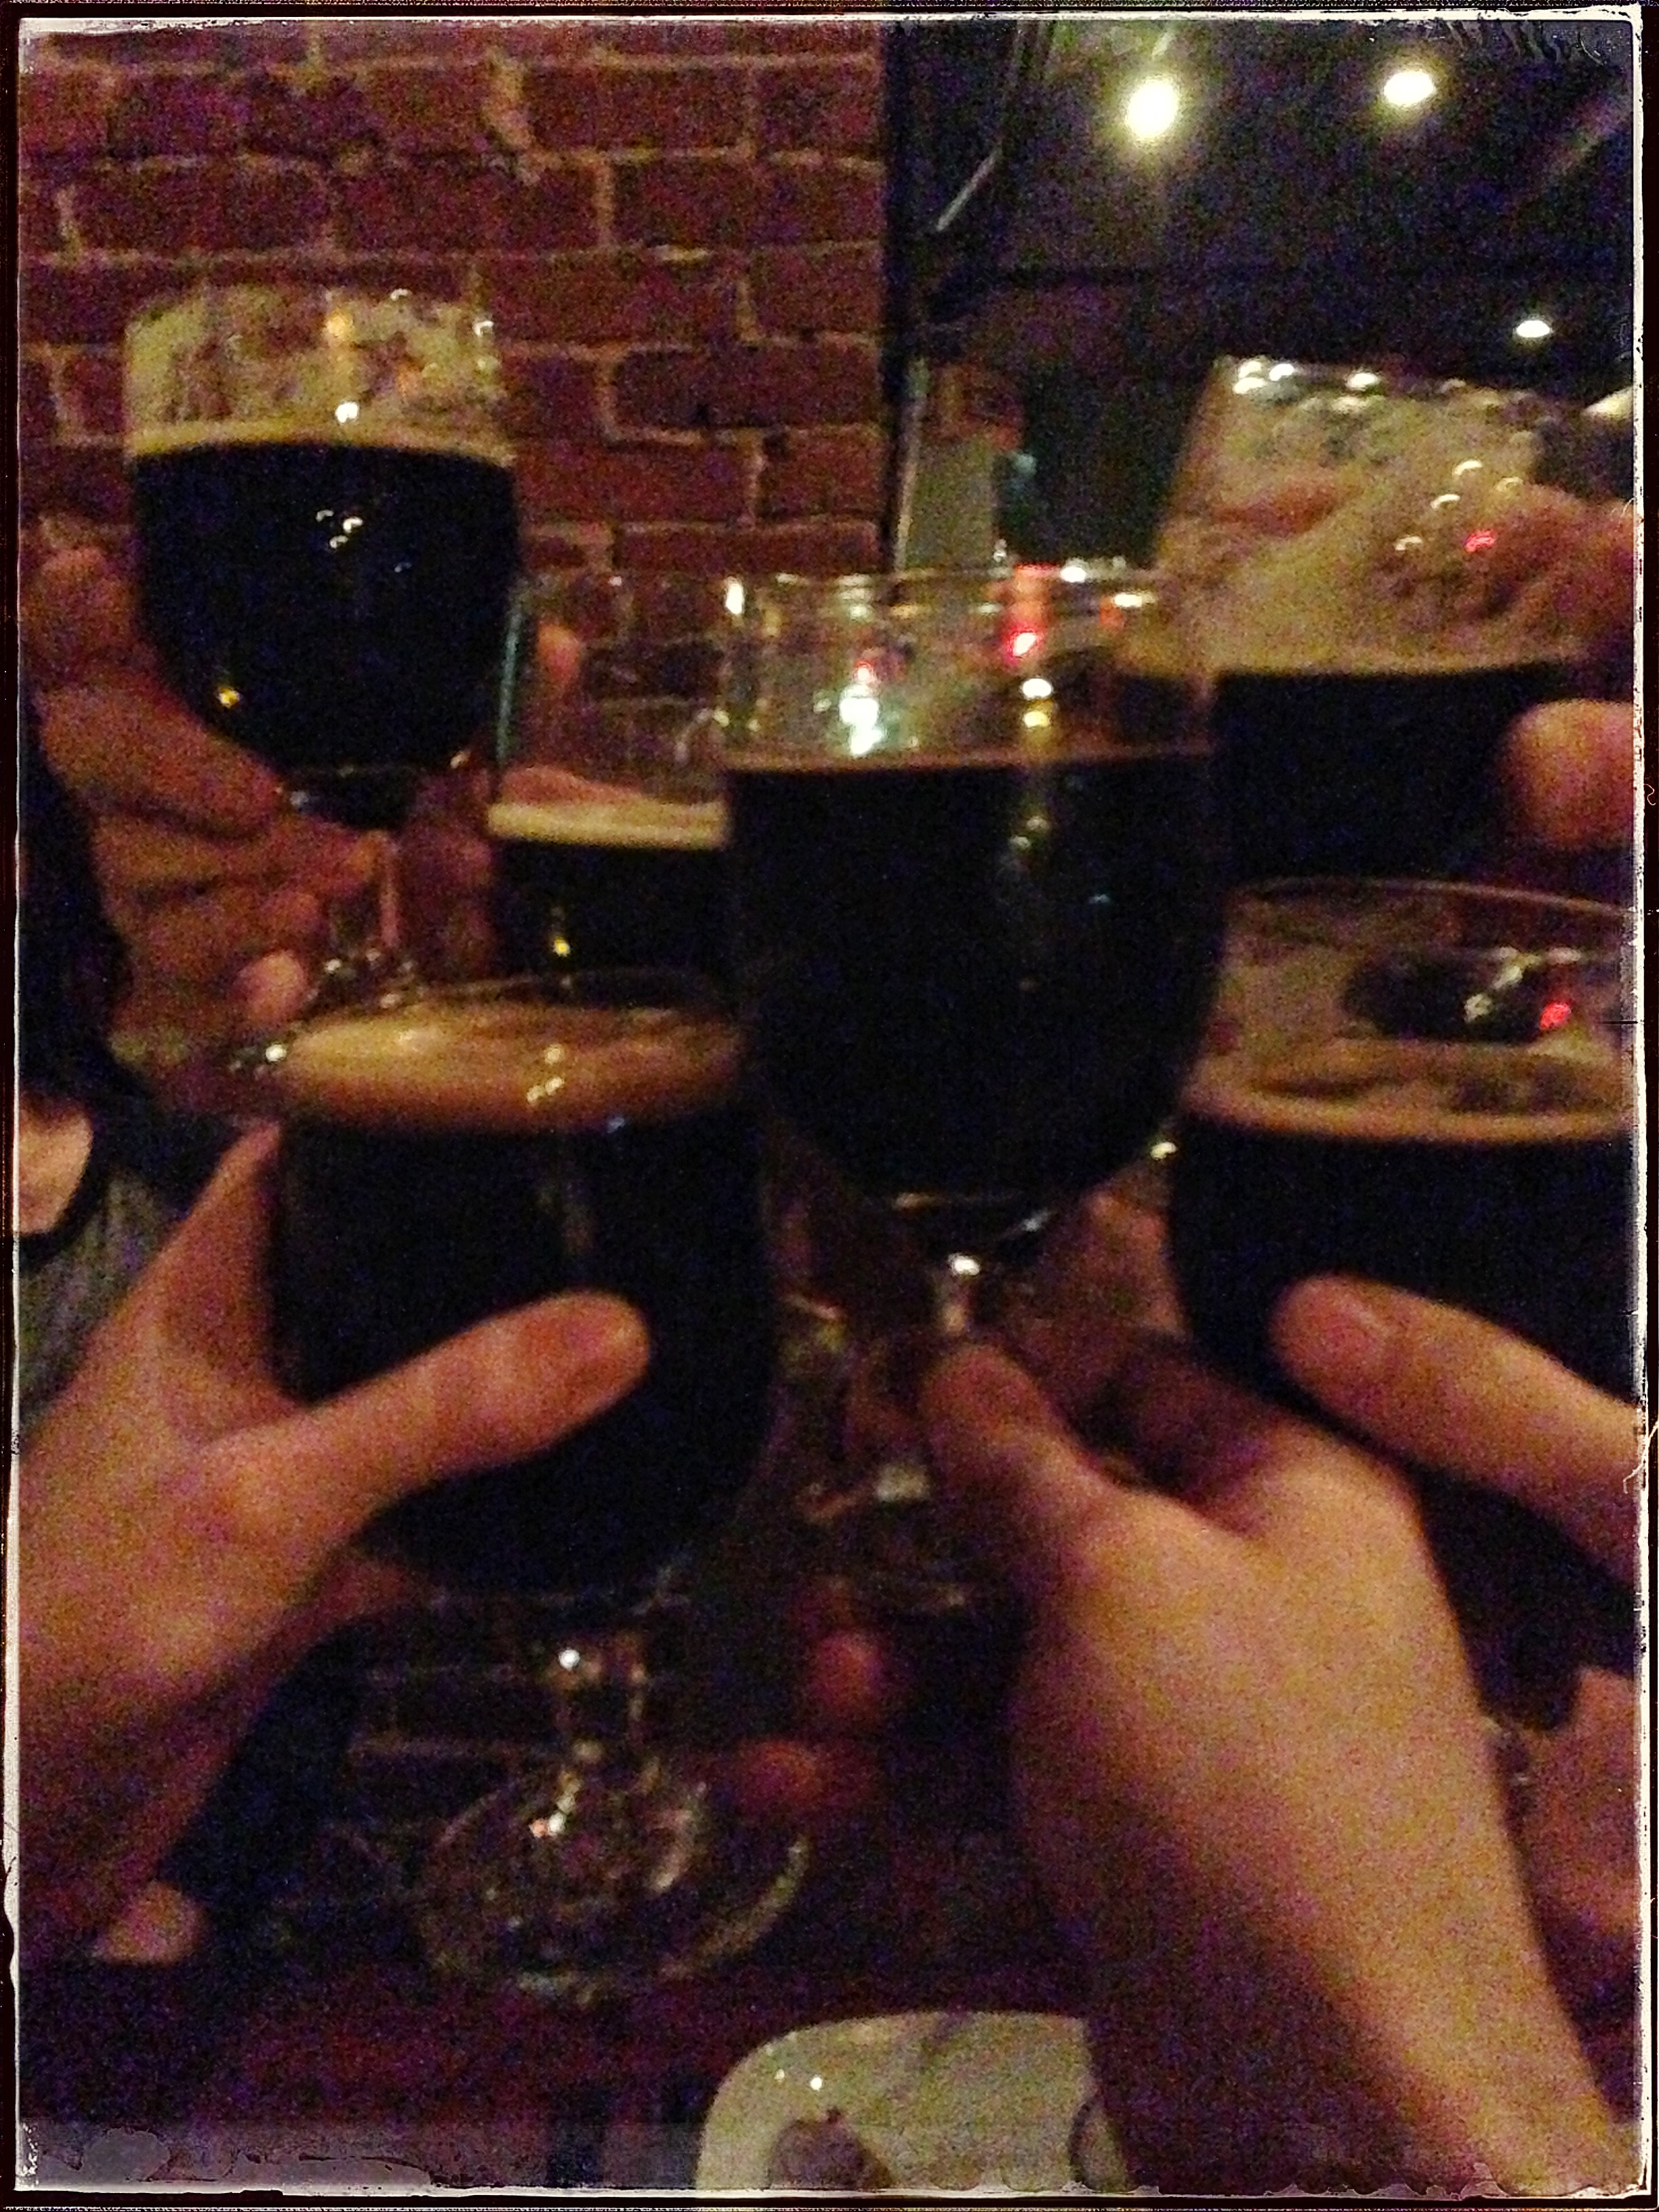 This is what Stout Fest looks like.